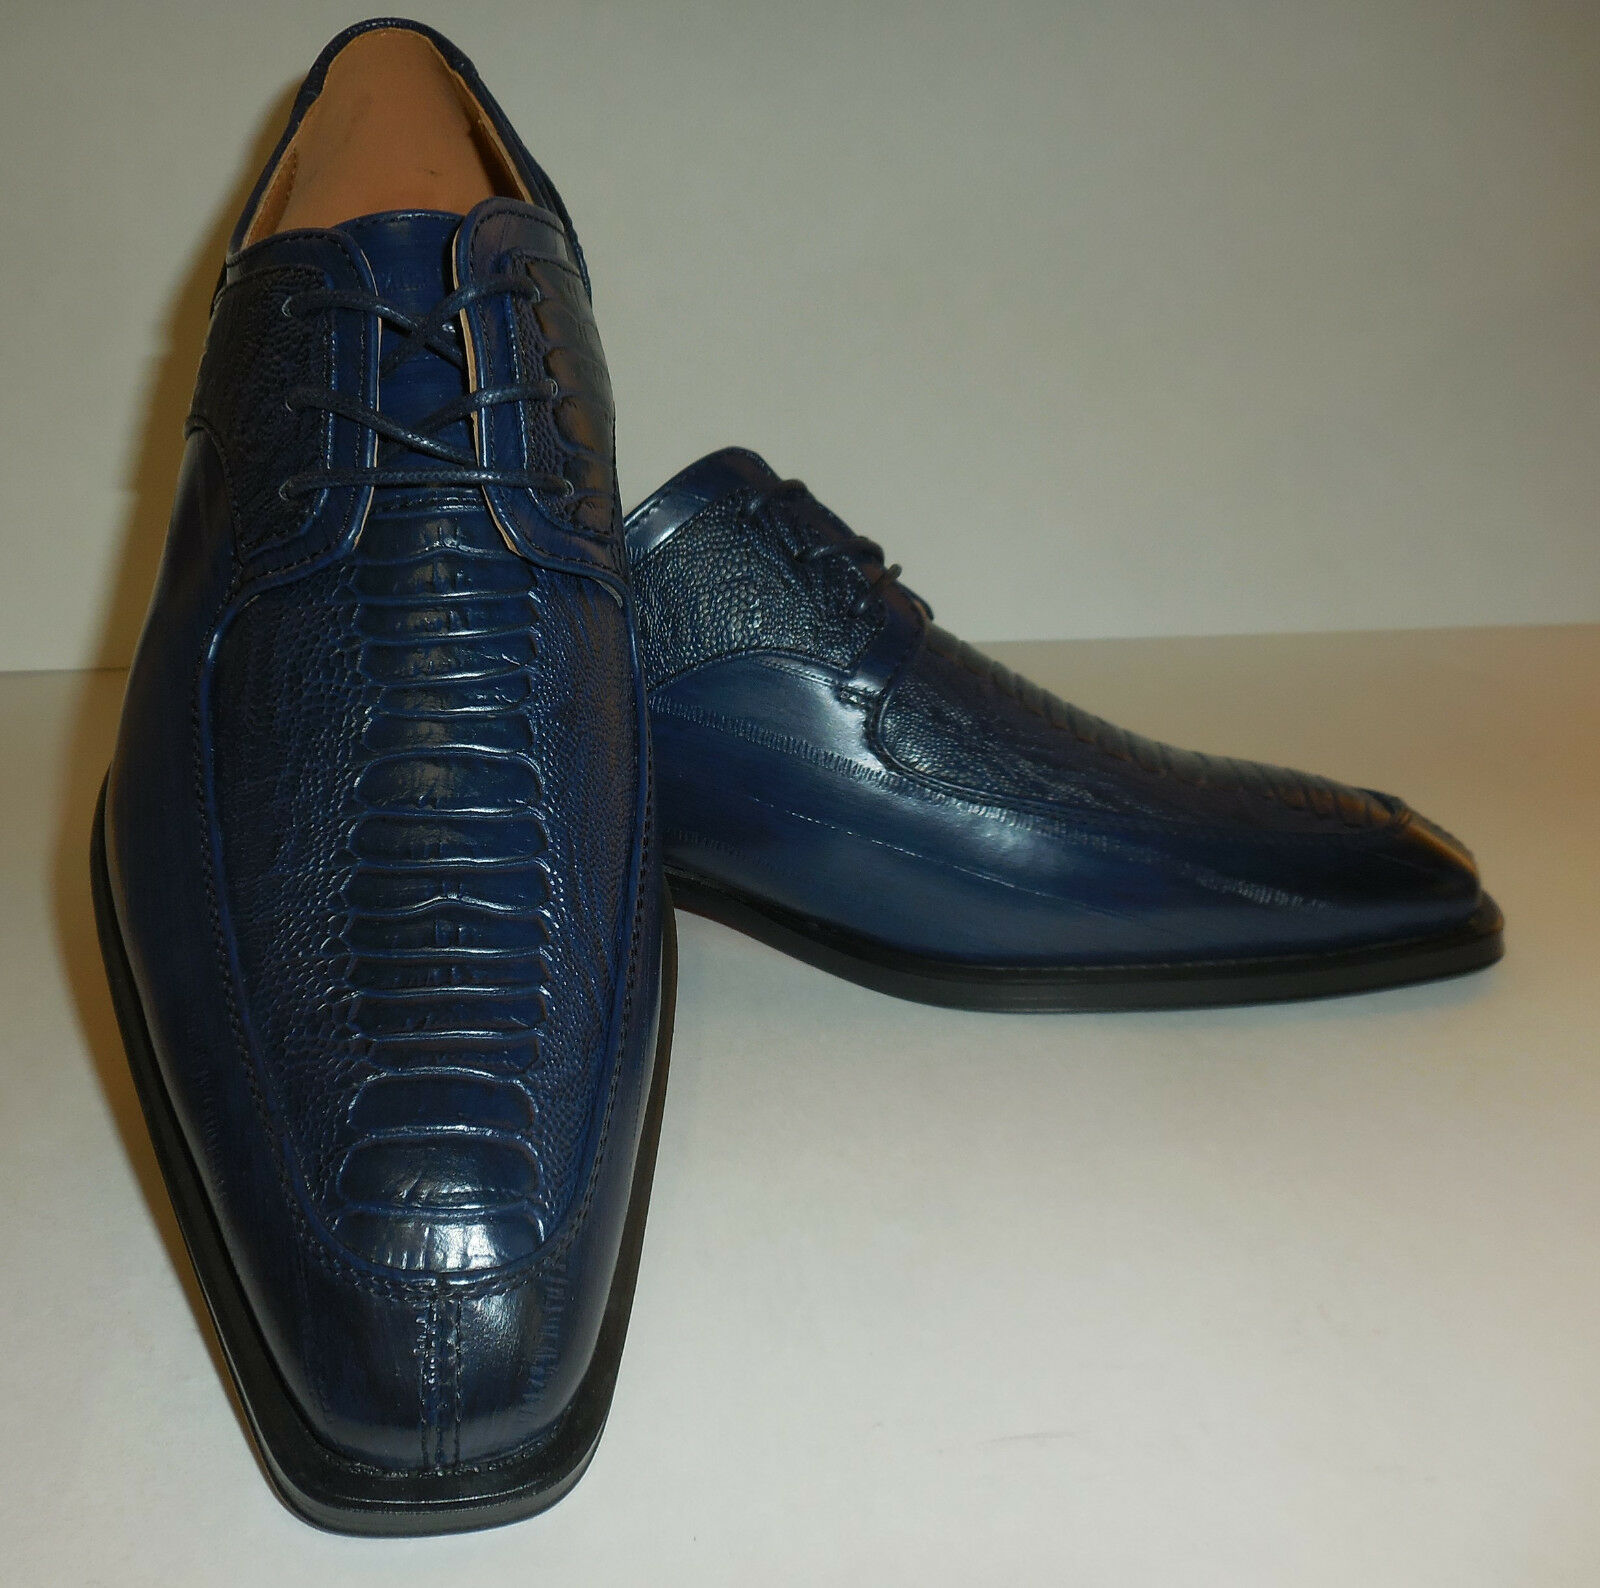 Mens New Edition Antonio Cerrelli Oxford Dress schuhe 6536 Navy Blau Modern Toe